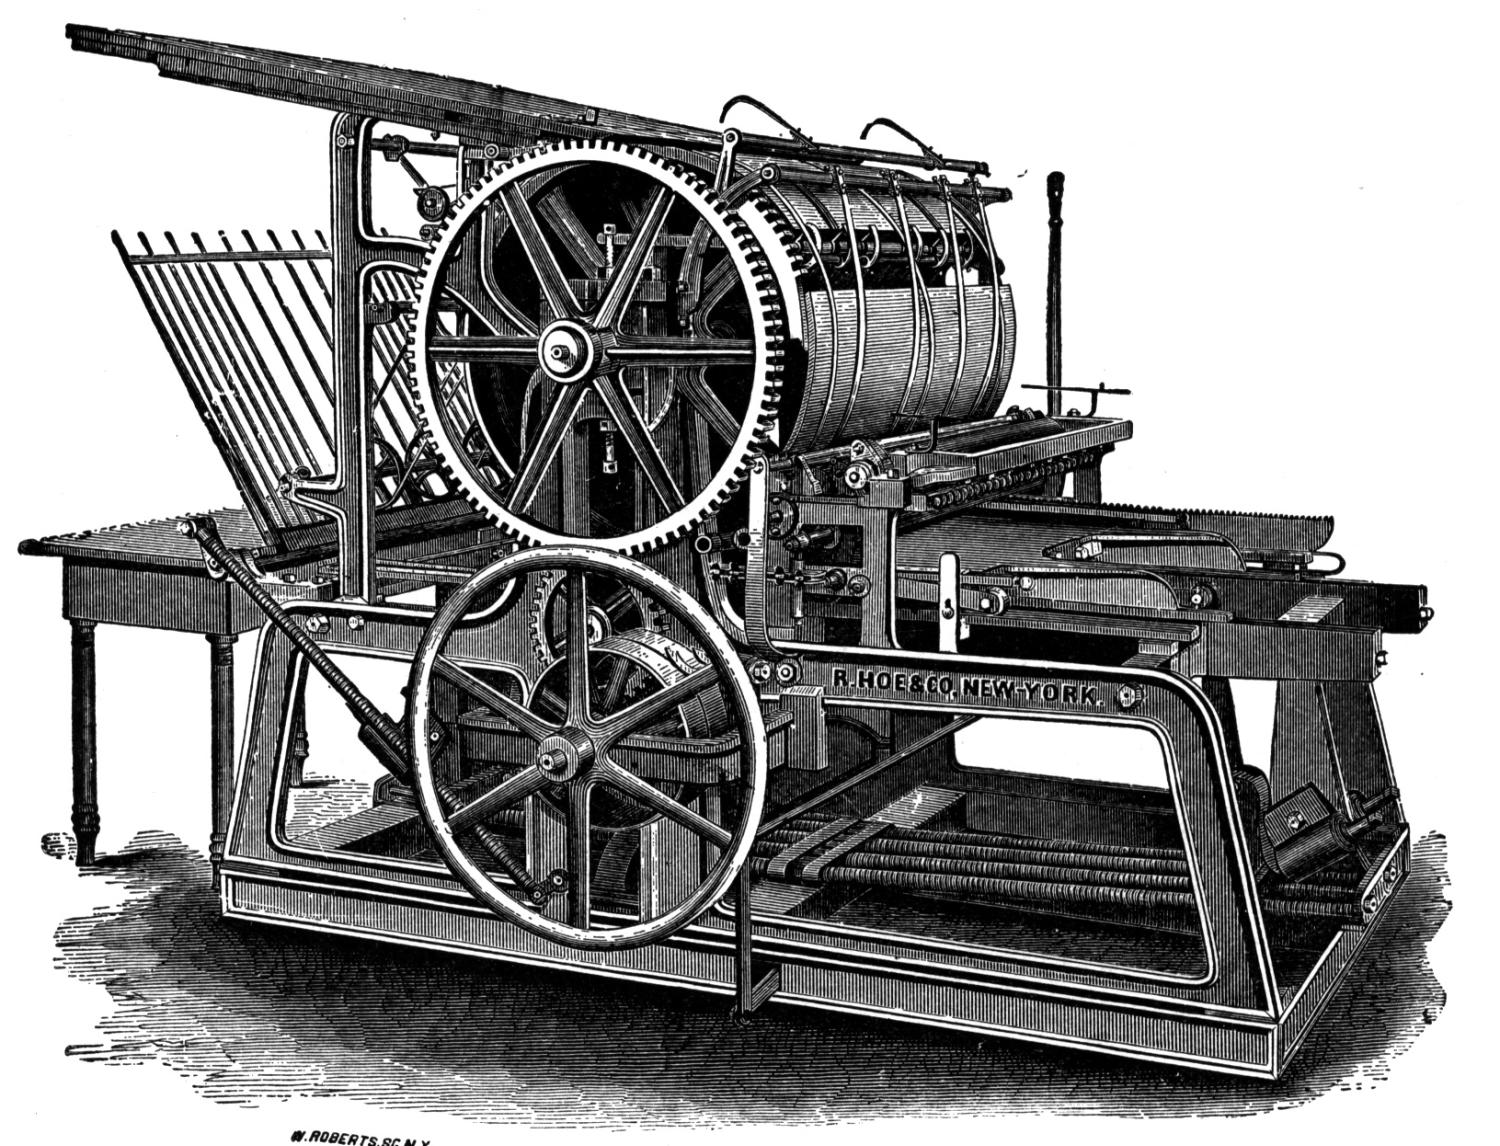 Printing press, product of the Industrial Revolution